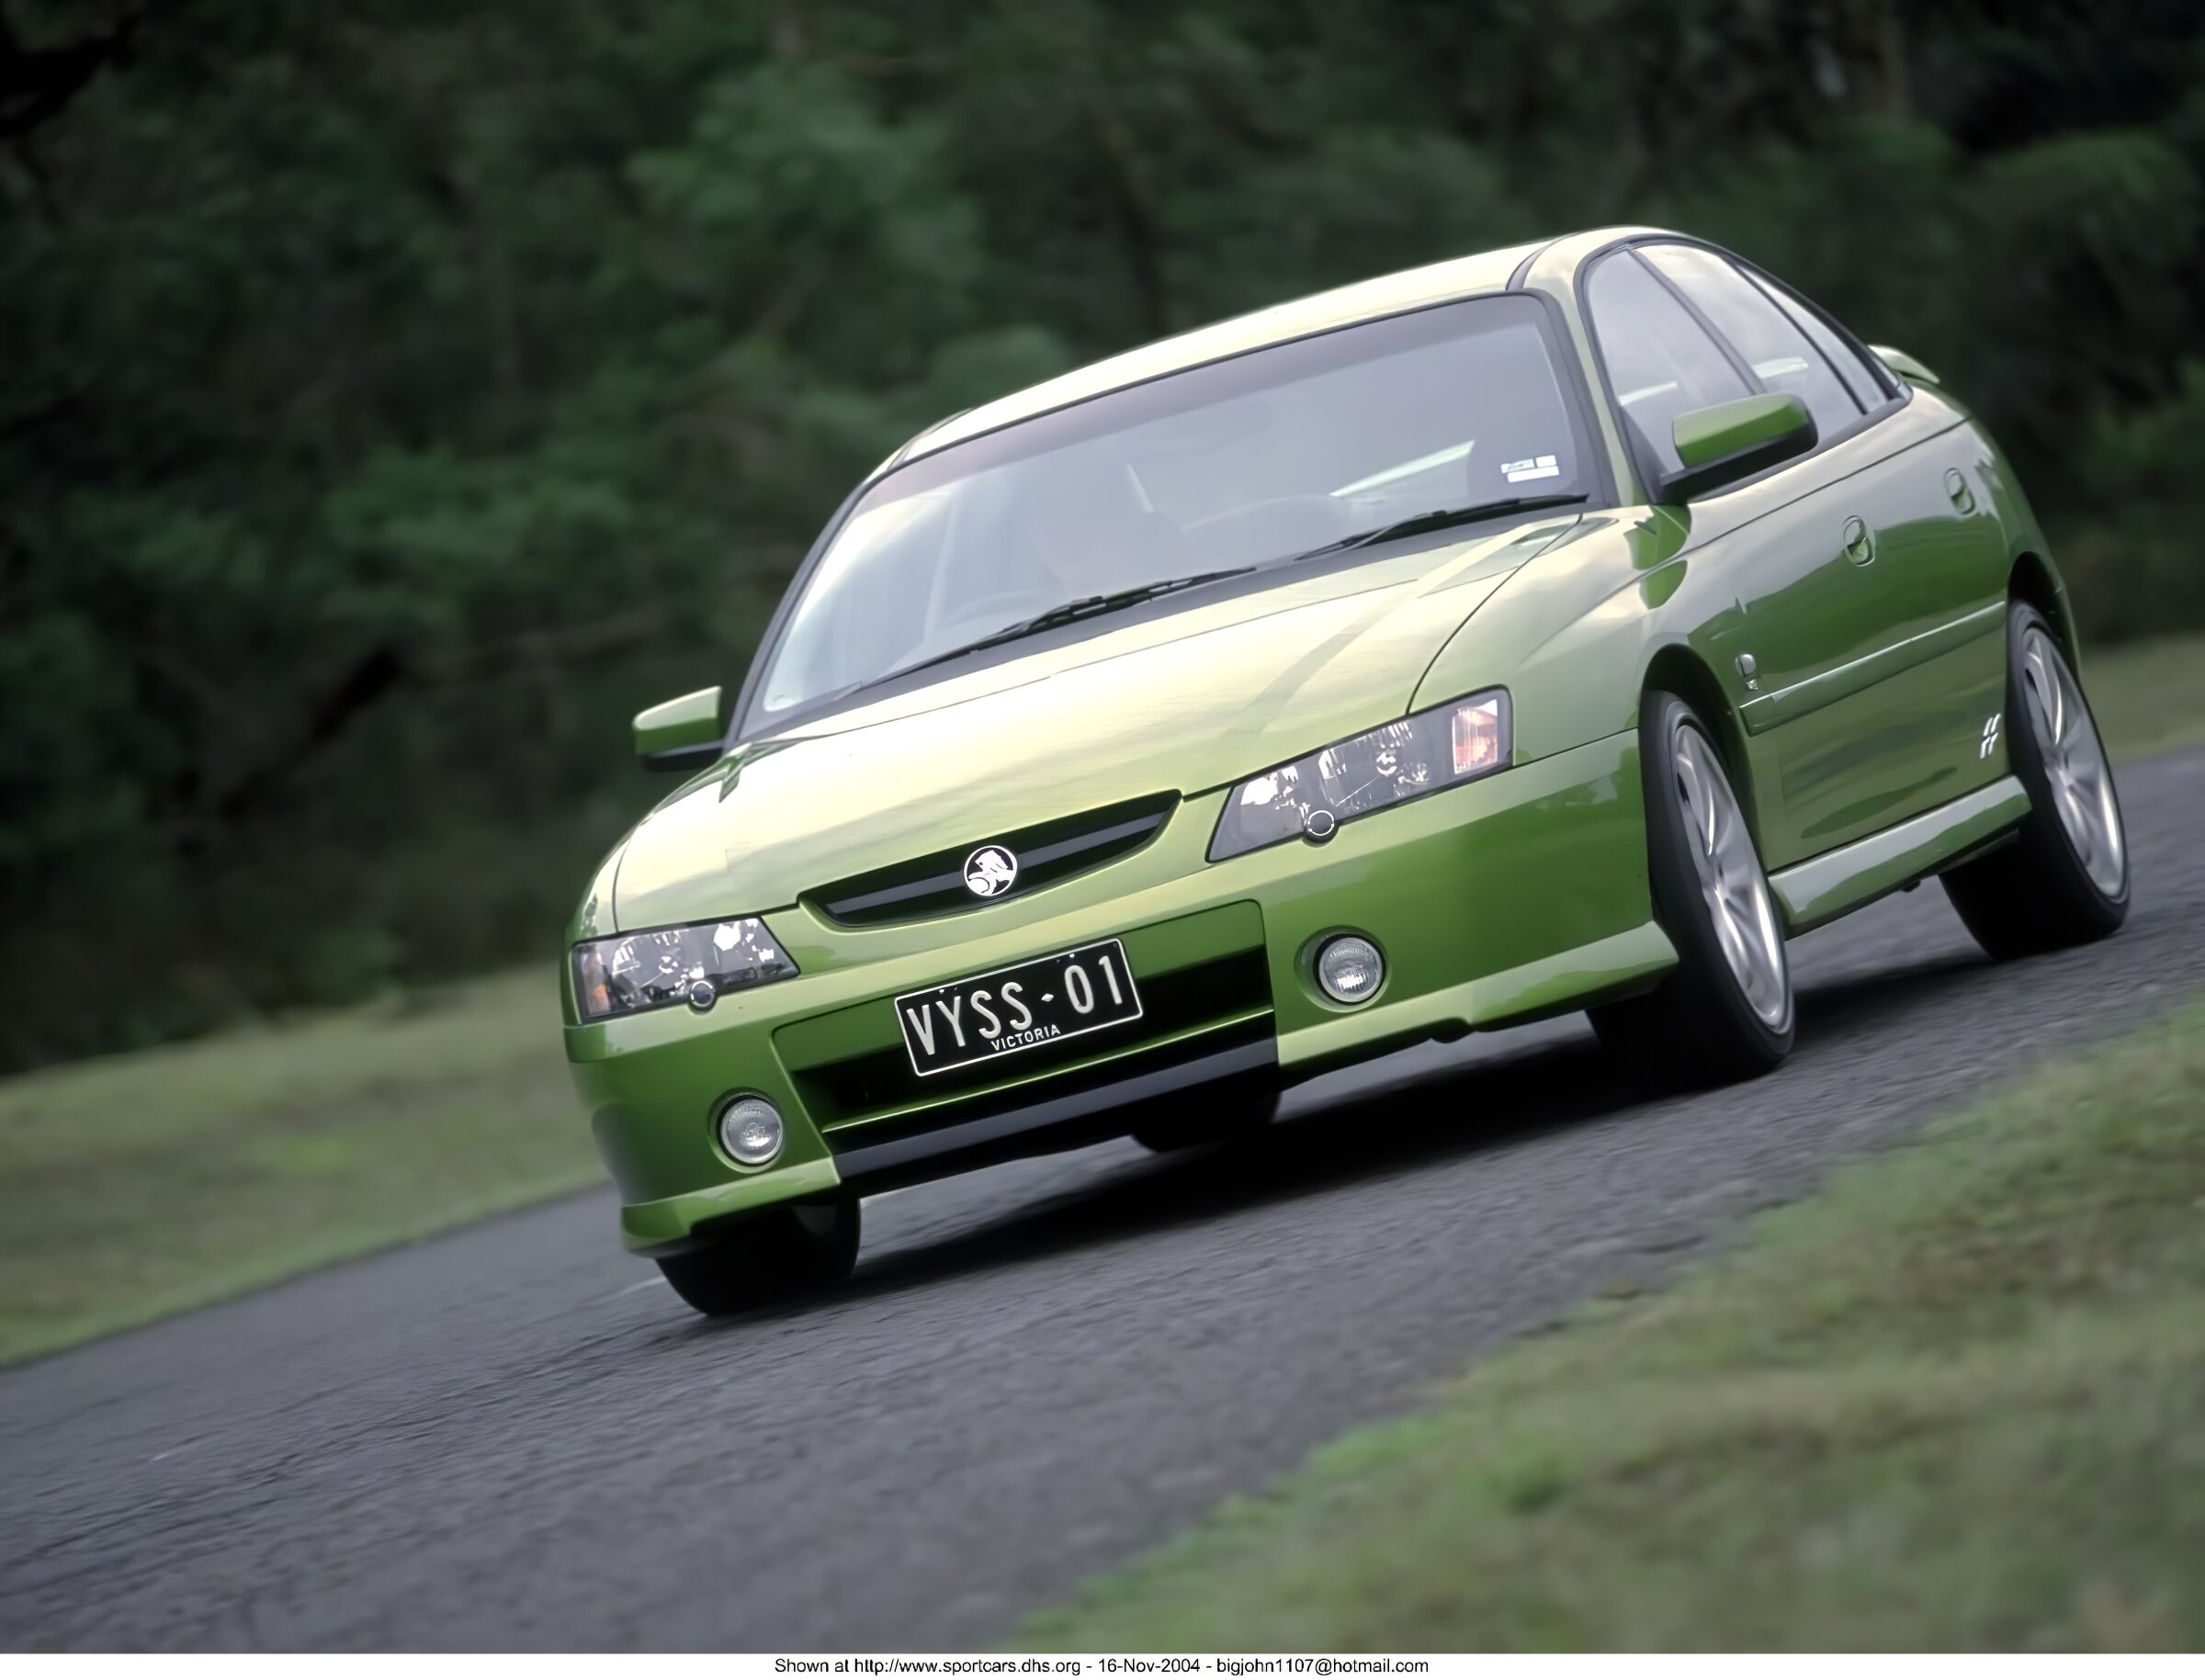 Holden Commodore SS - ID: 7305